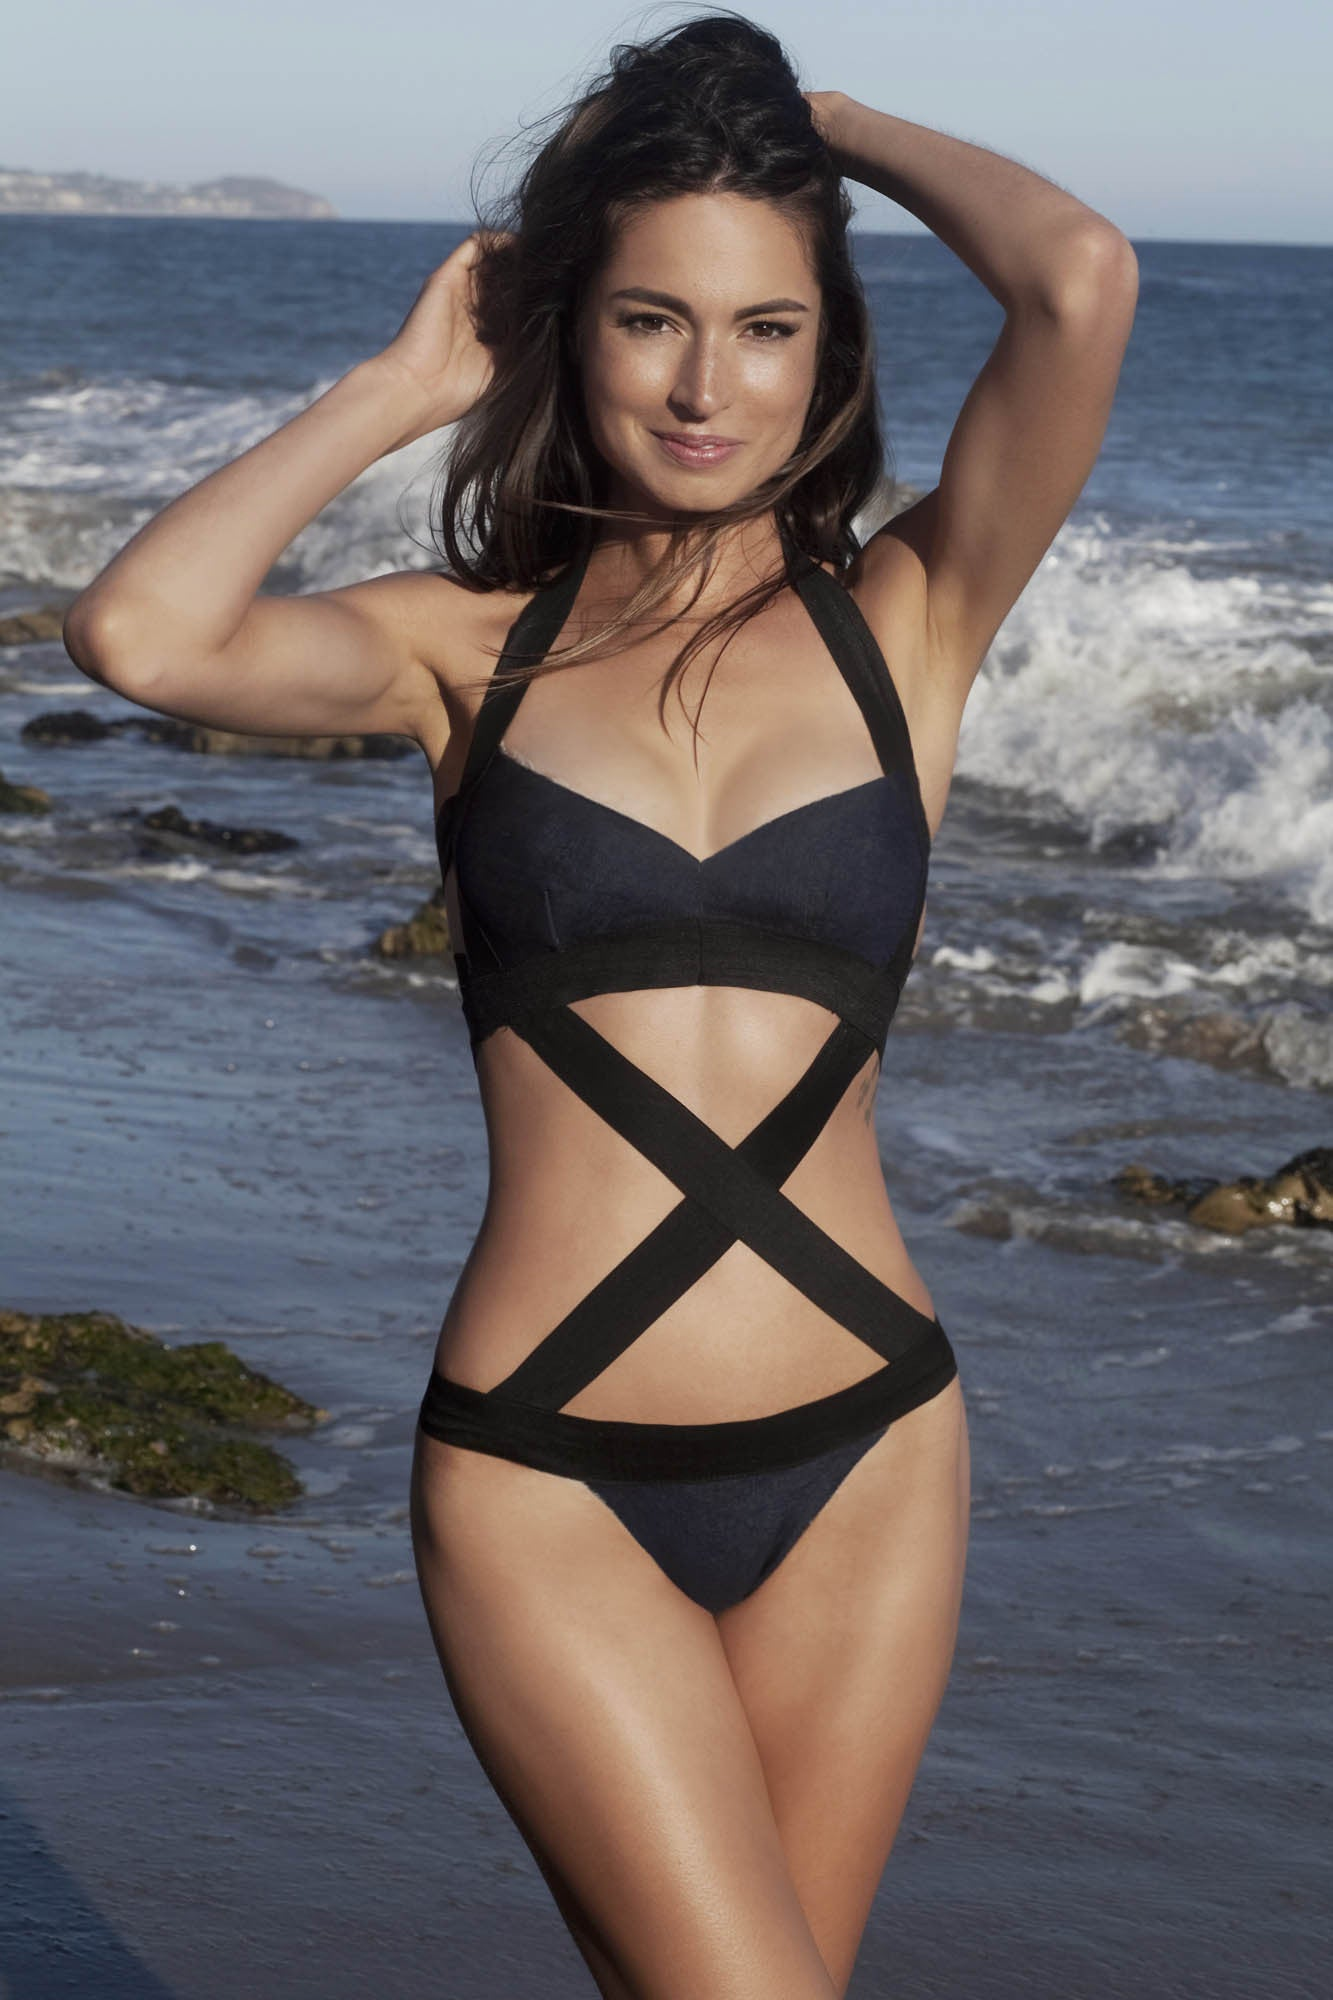 W Style. Bandage/jeans criss cross swimsuit suit, one piece - LILYSH